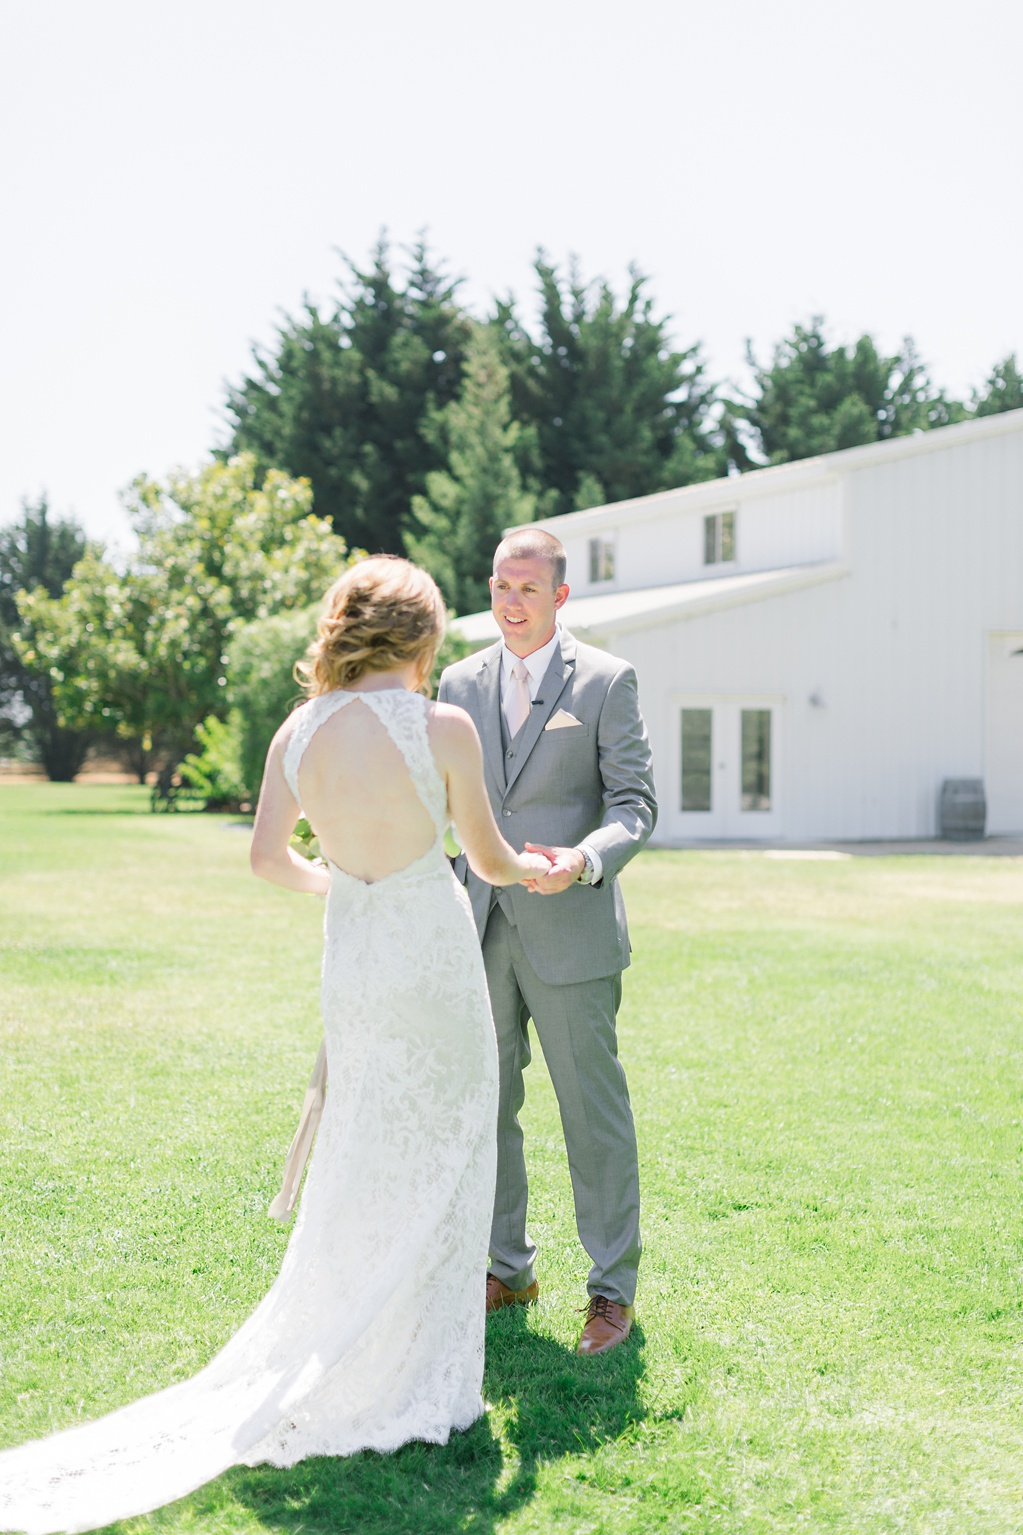 White Barn Inspired Summer Wedding In The Valley of Arroyo Grande, California by Wedding Photographer Madison Ellis (53)